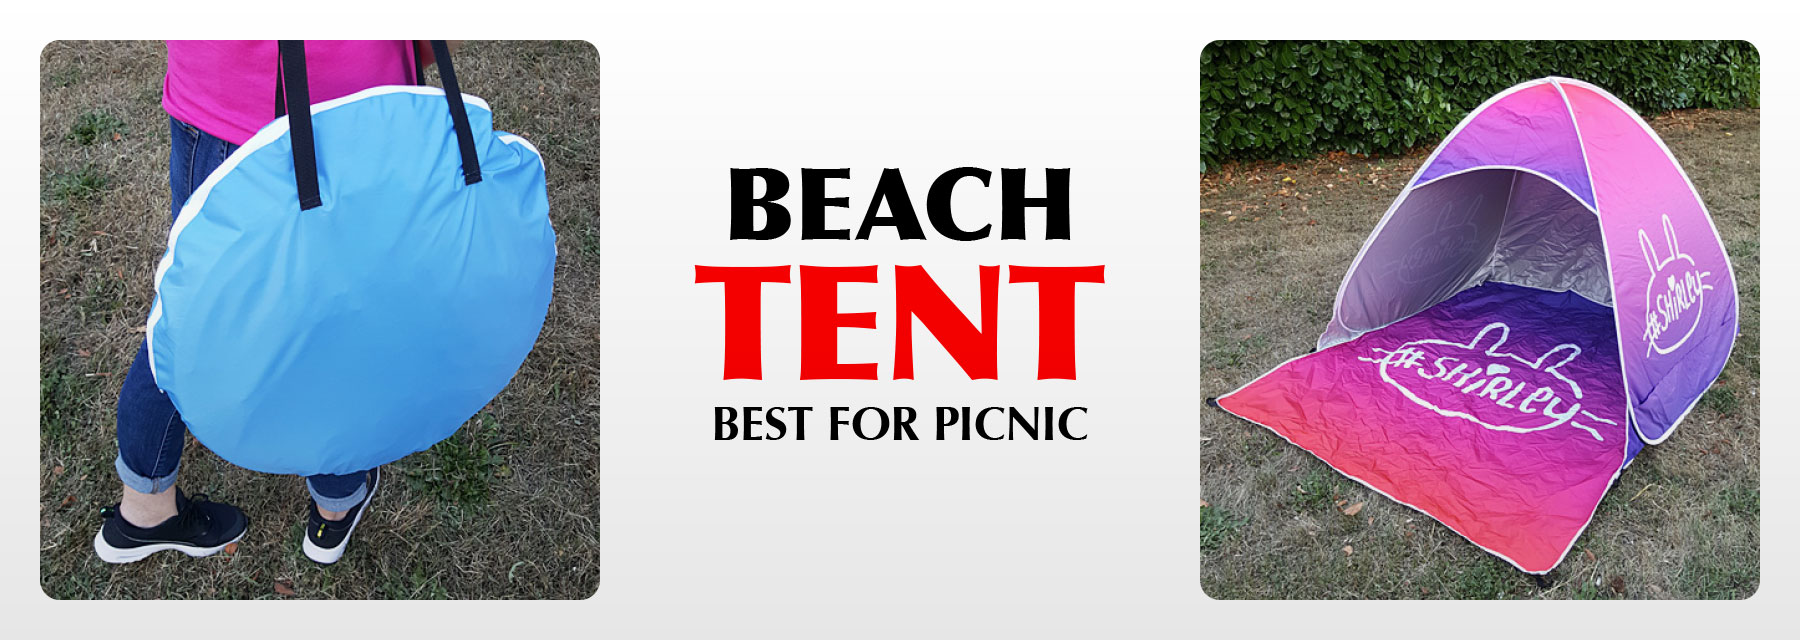 Beach tent for picnic